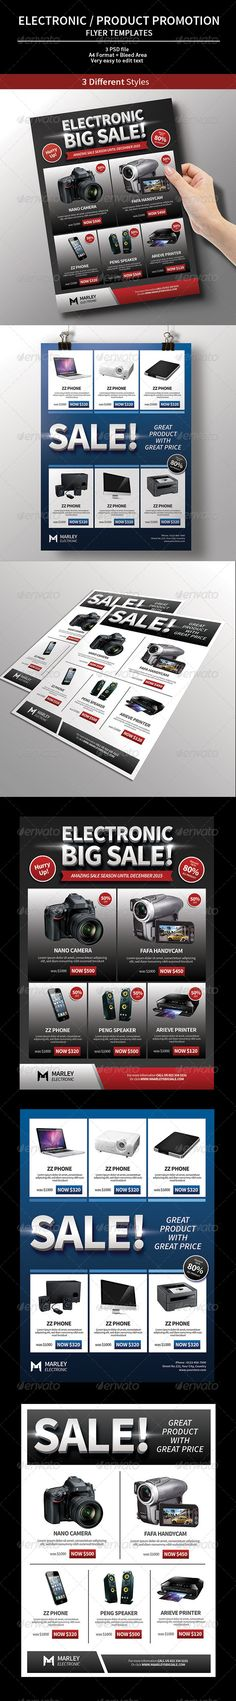 Electronic / Product Promotion Flyer. This Electronic / Product Promotion Flyer, can be used for promote your Electronic product, Black Friday sale promotion, Christmas time sale season, etc. Very easy to edit text.